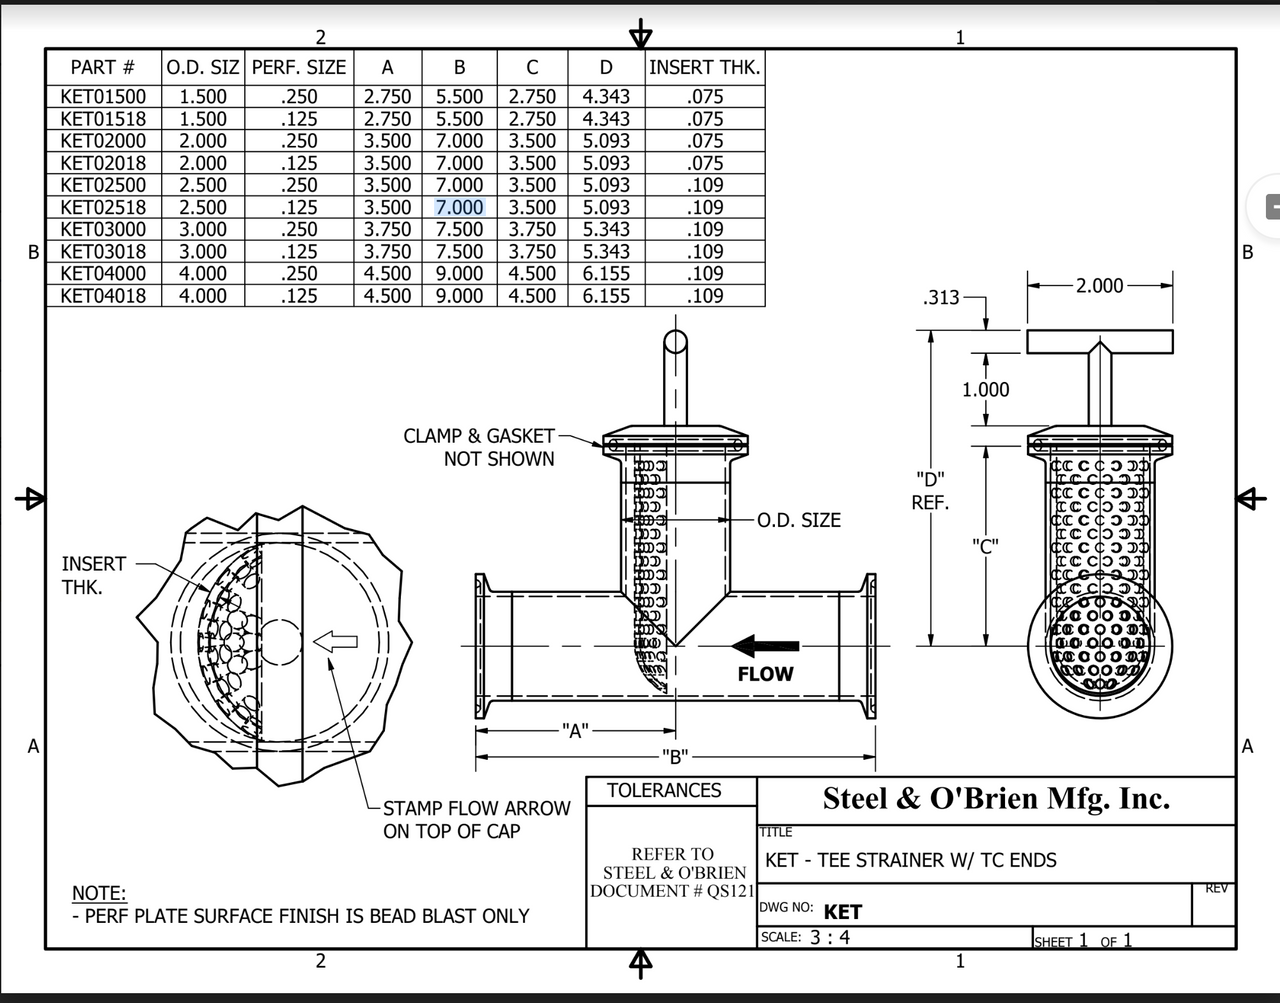 Tee Strainer W/ T/C Ends